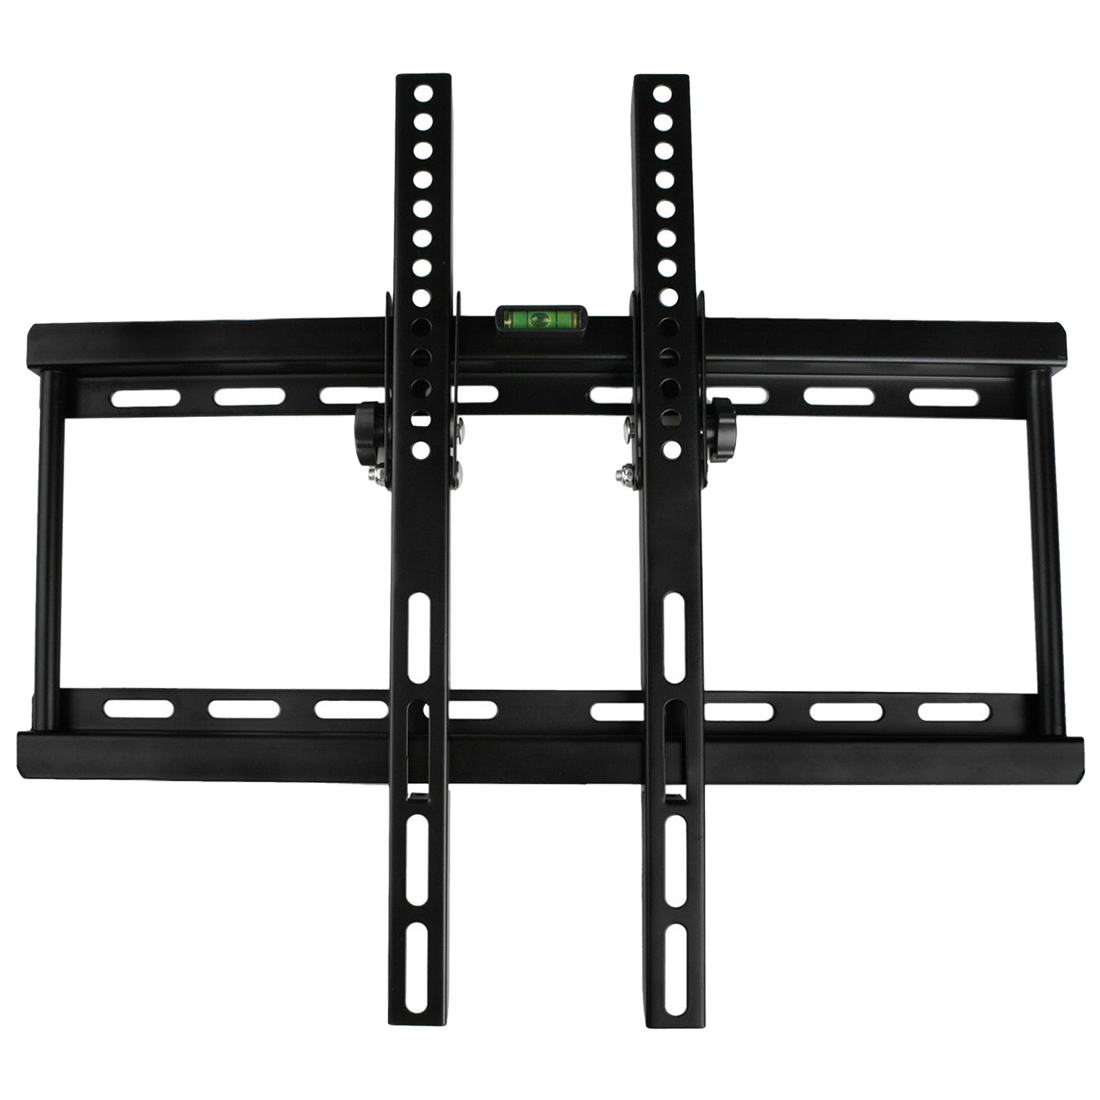 Bathroom Fixtures Bathroom Hardware Cooperative Ksol Flat Slim Tv Wall Mount Bracket 23 28 30 32 40 42 48 50 55 Inch Led Lcd Plasma Beneficial To Essential Medulla